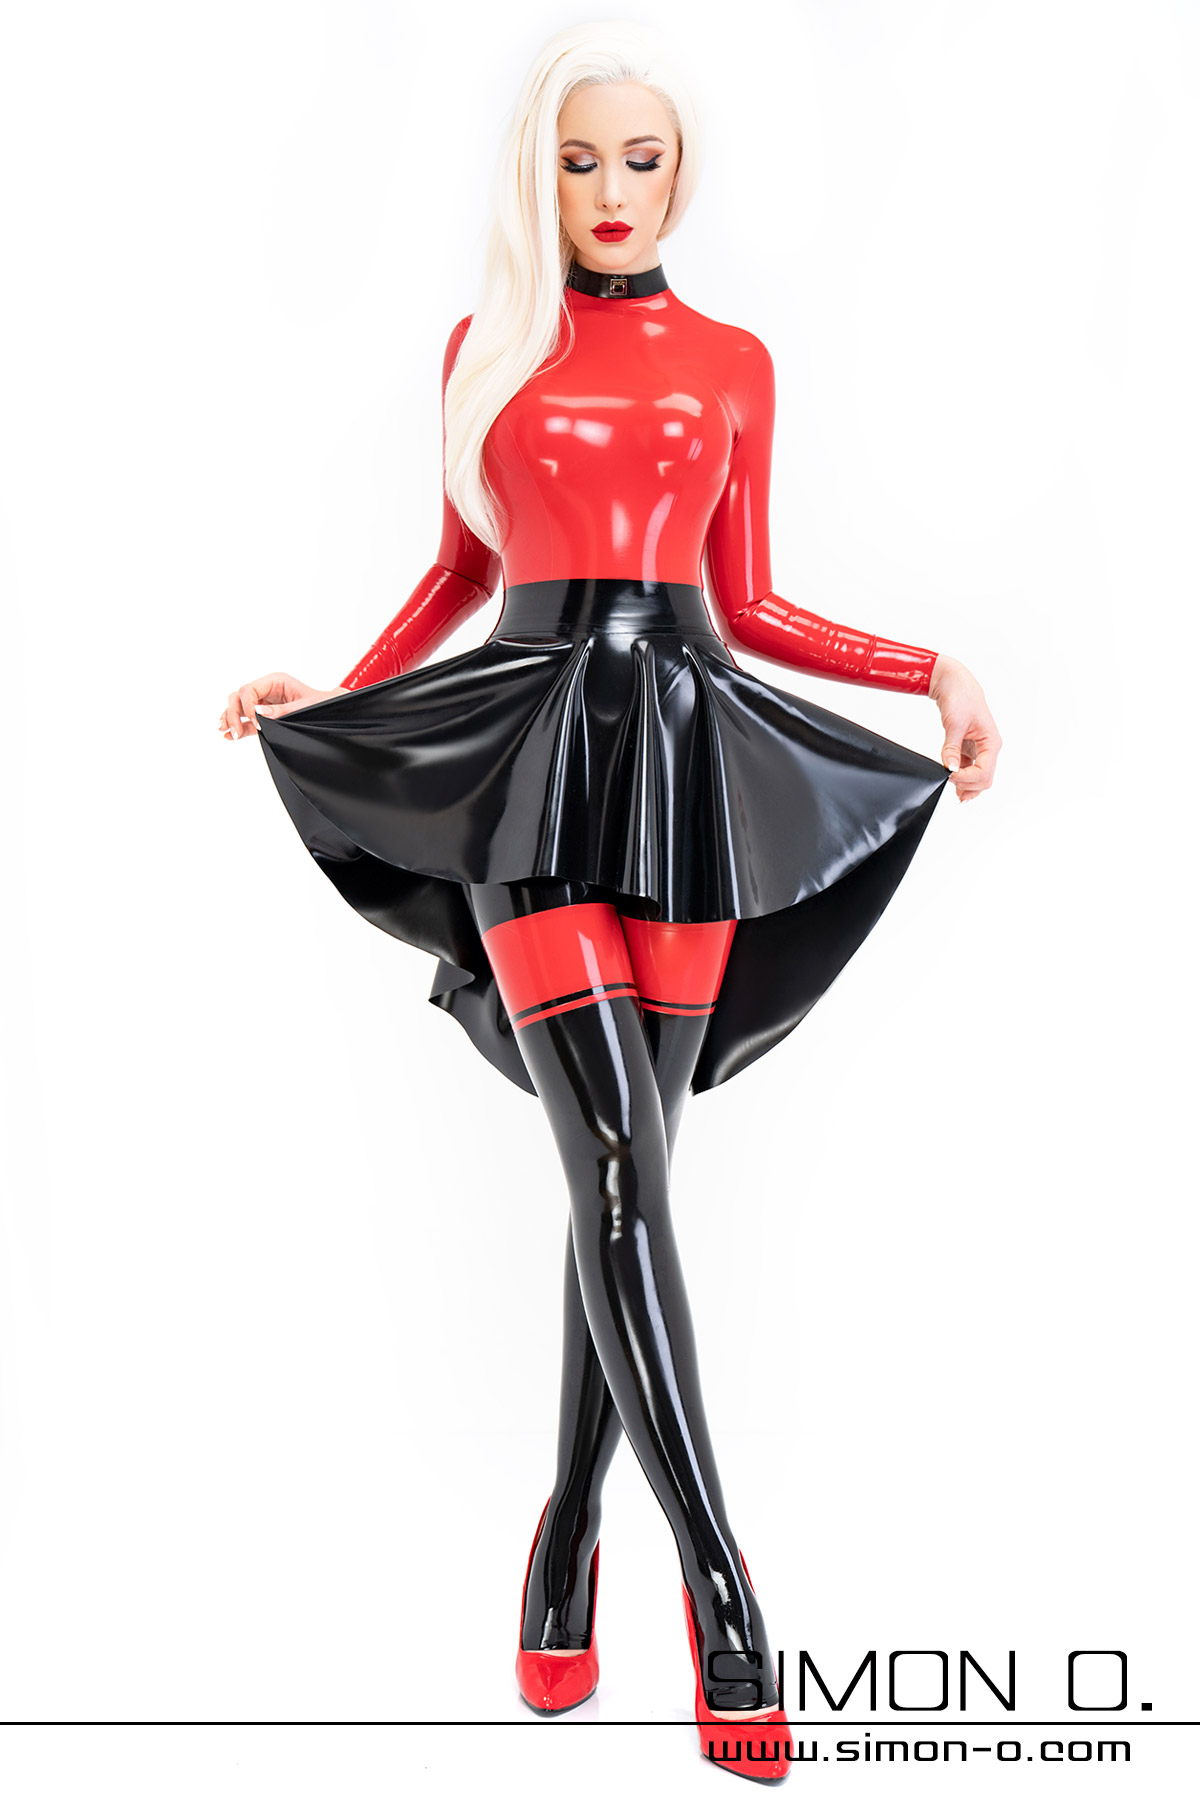 A blonde woman wears a latex plate skirt in black over a black red skintight latex catsuit